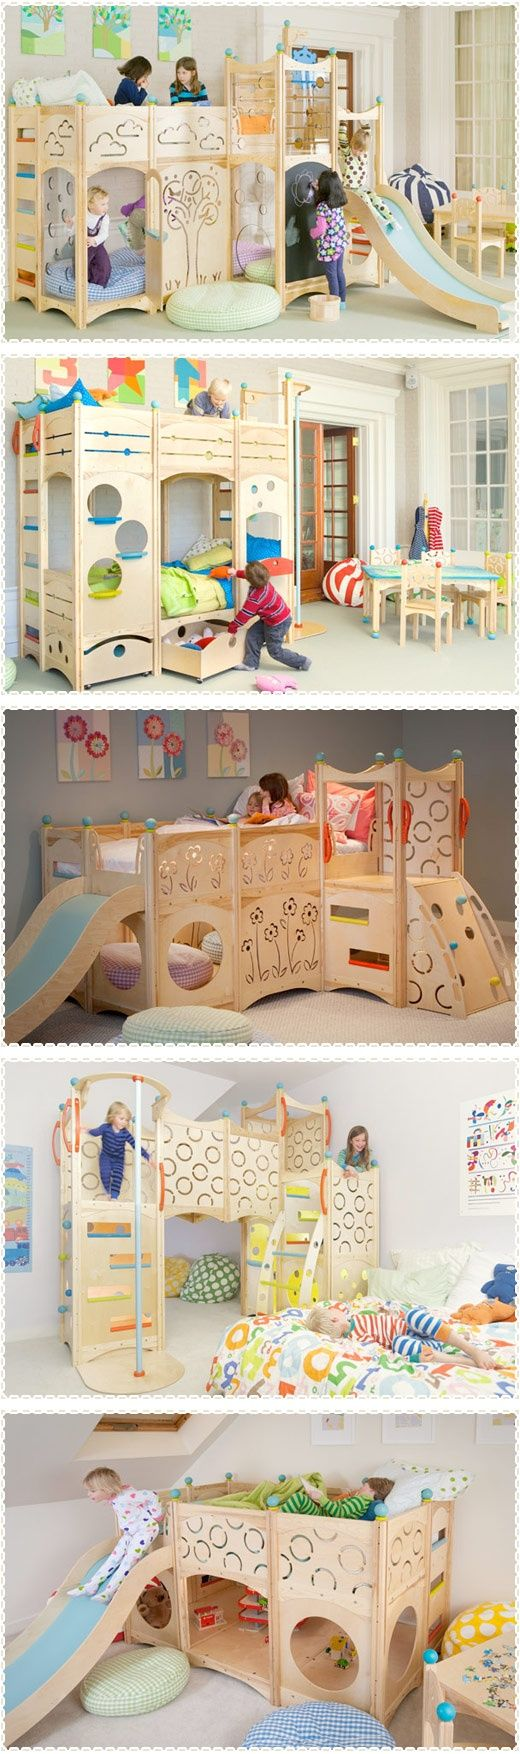 I pinned this because these look really fun for your child and will keep them very active making it easier for naptime!